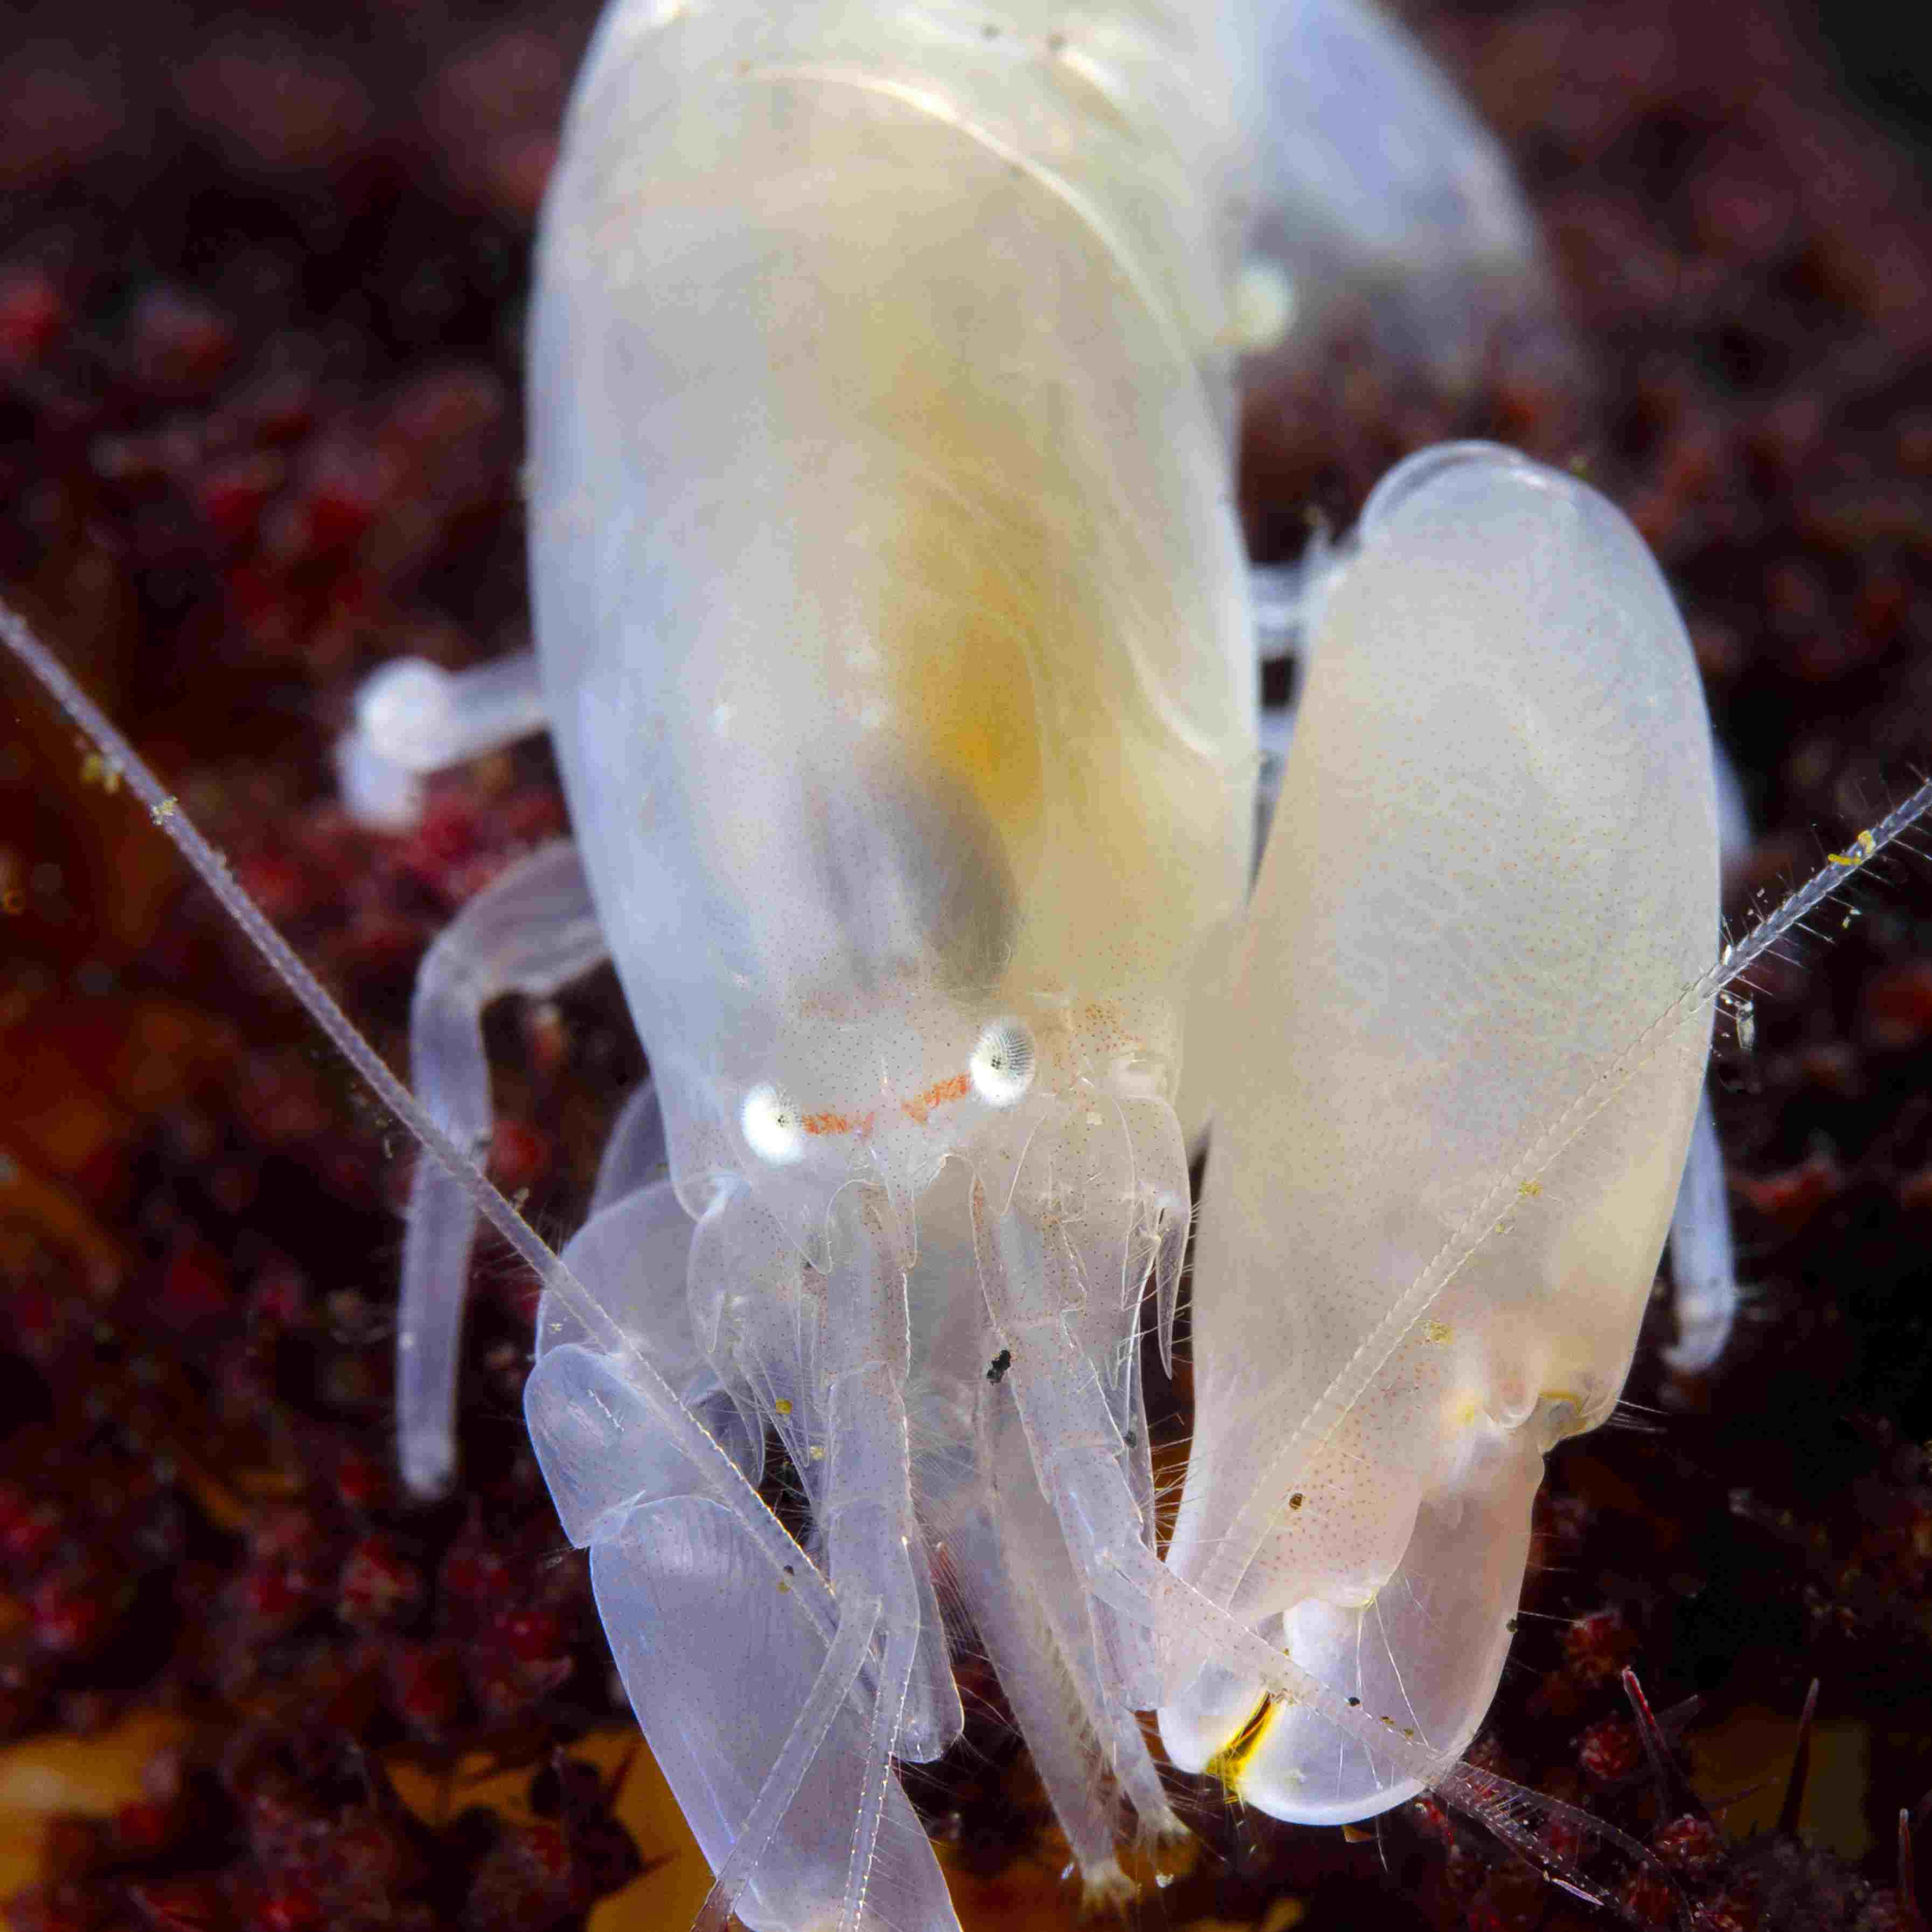 Close up of a snapping shrimp.